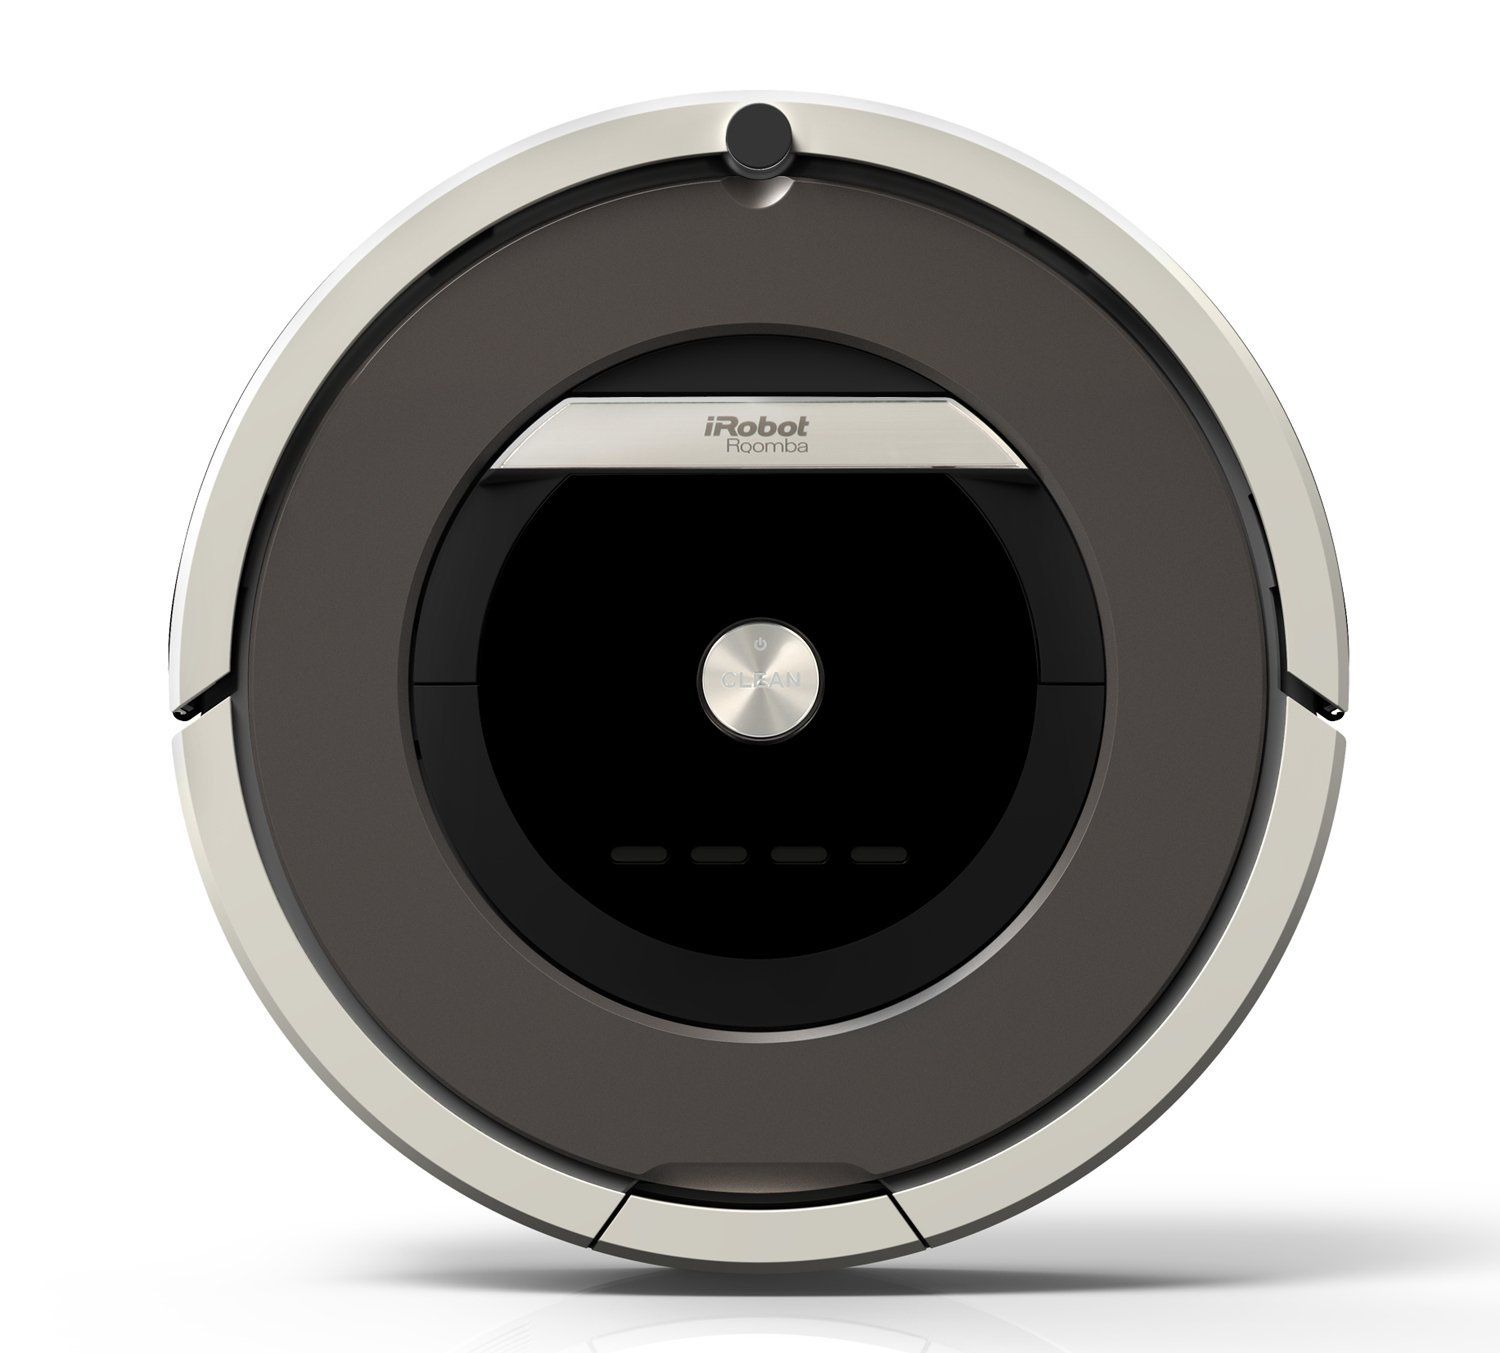 iRobot Roomba 870 Vacuum Cleaning Robot For